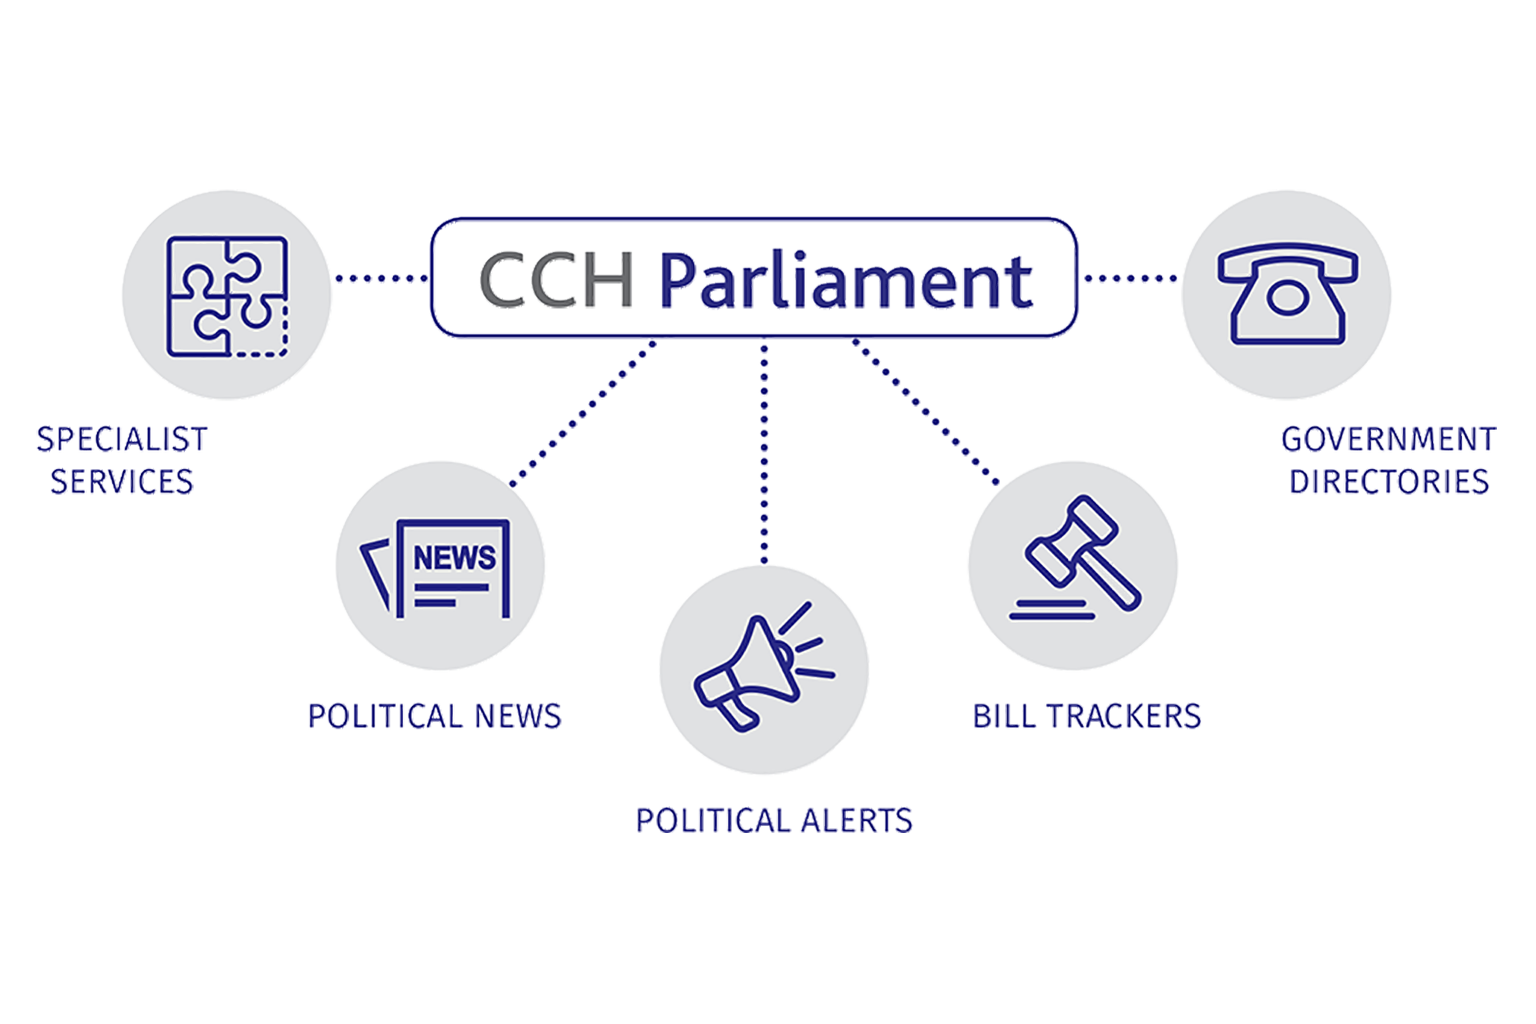 CCH Parliament Intro Graphic